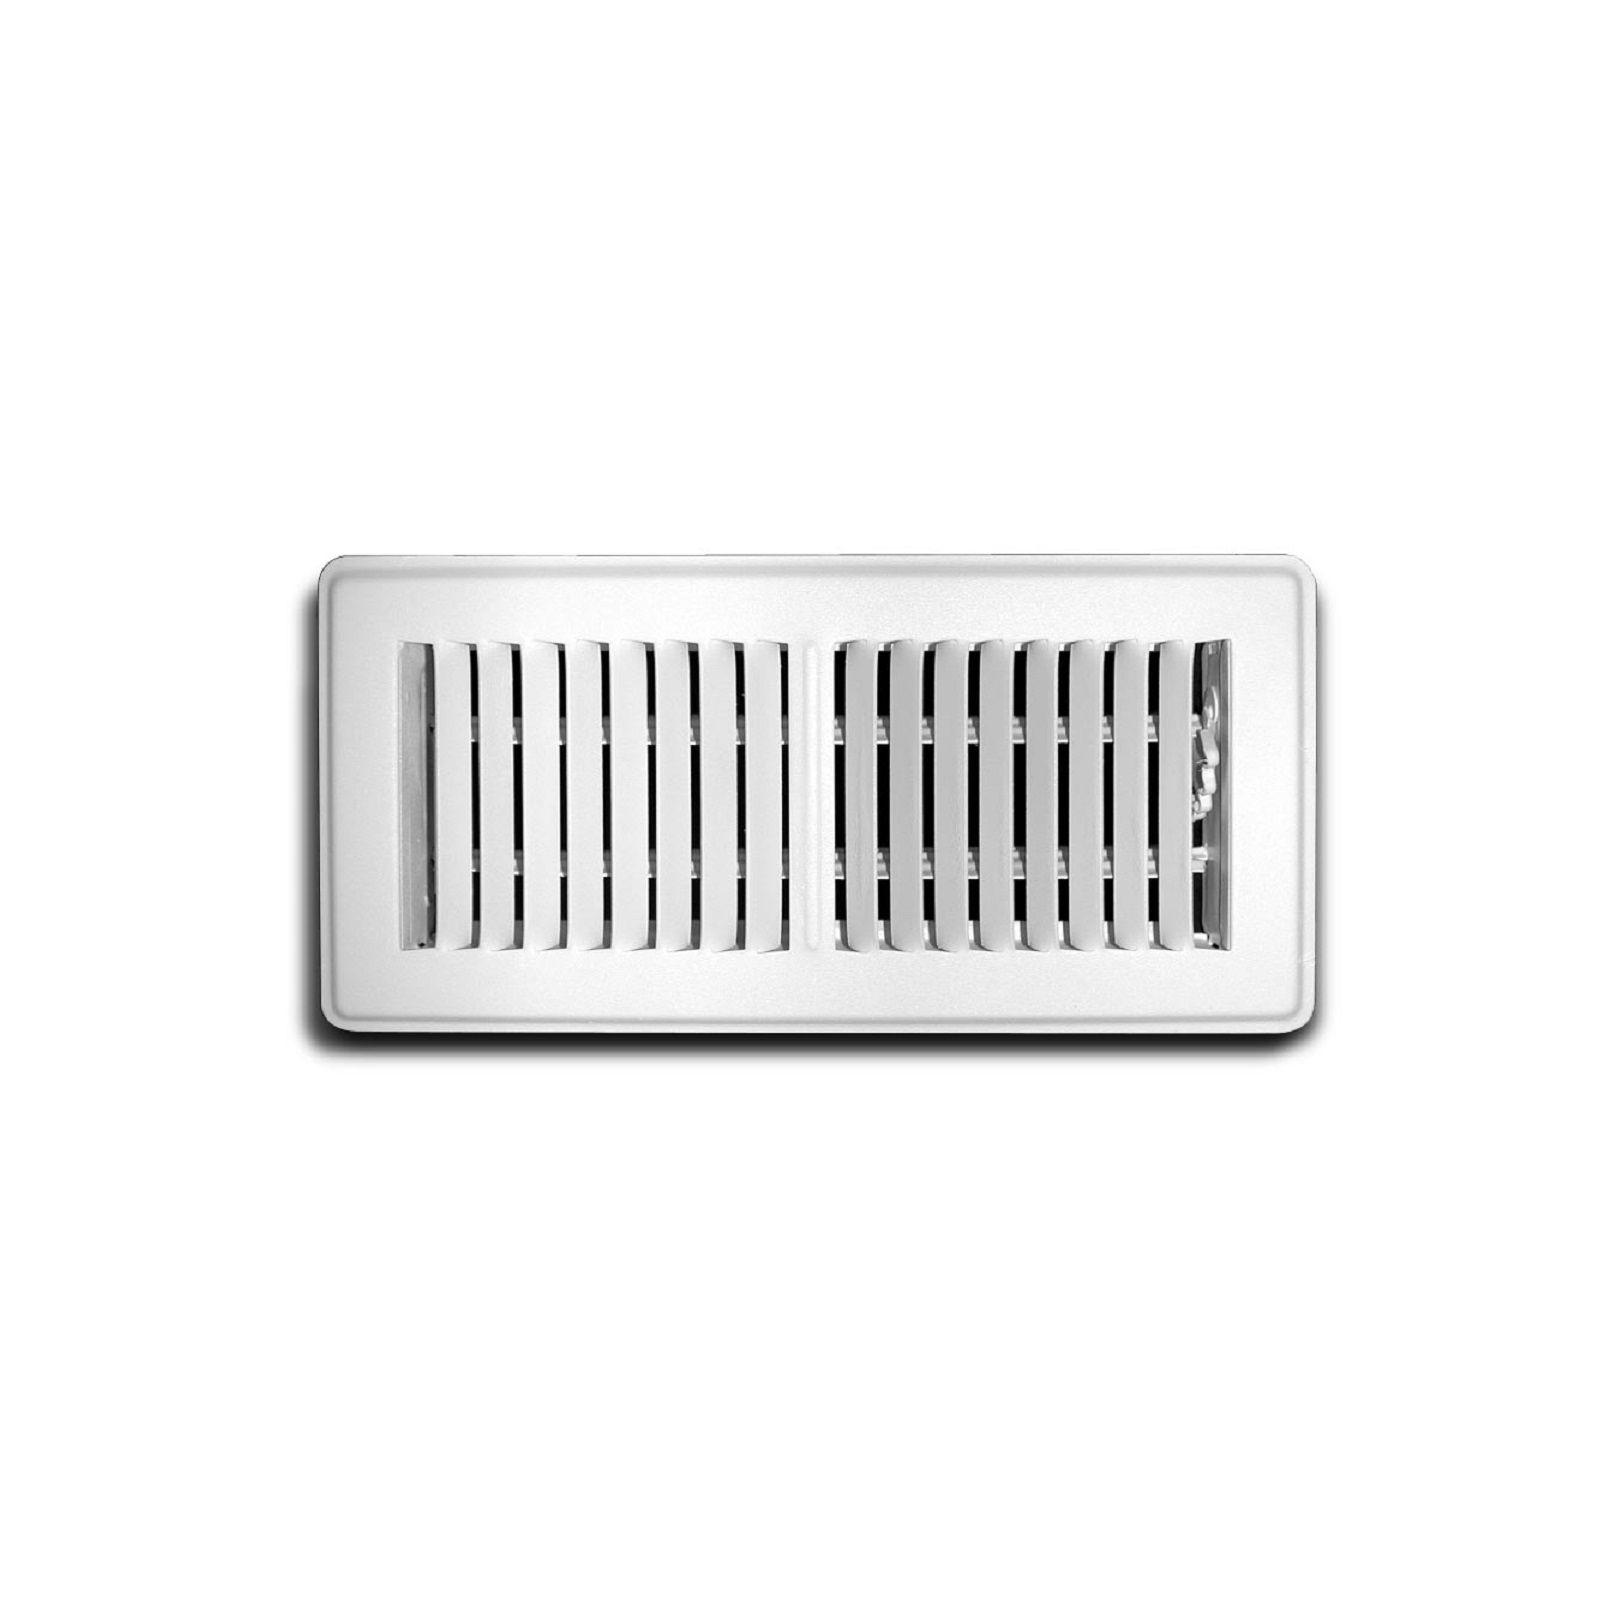 "TRUaire 150MW 04X12 - Steel Stamped Face Floor Diffuser, White, 04"" X 12"""